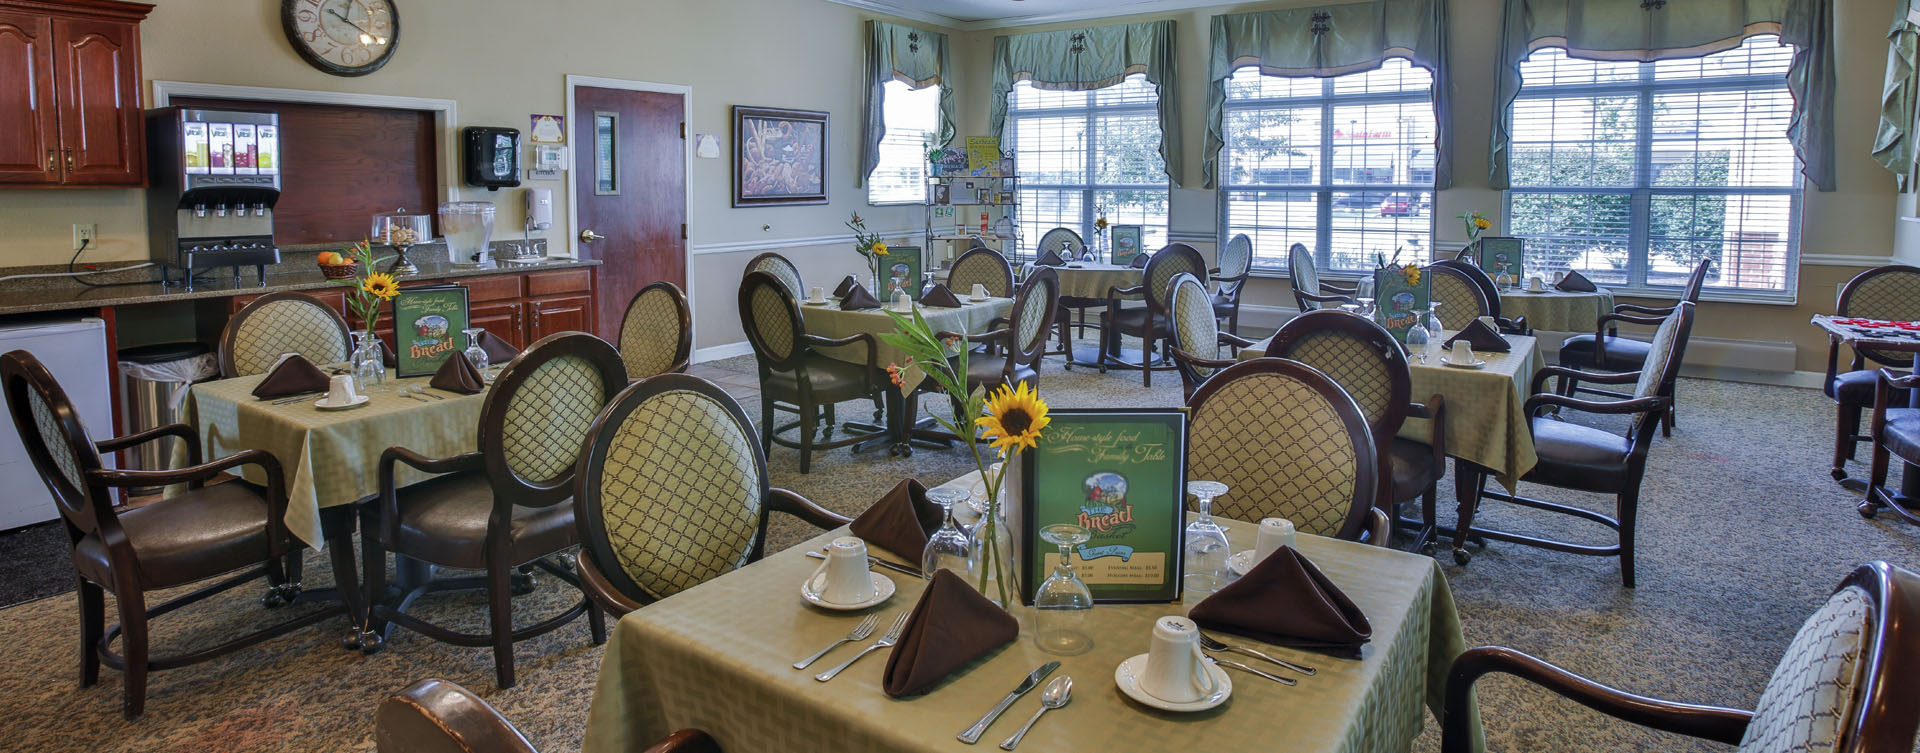 Enjoy homestyle food with made-from-scratch recipes in our dining room at Bickford of Lafayette